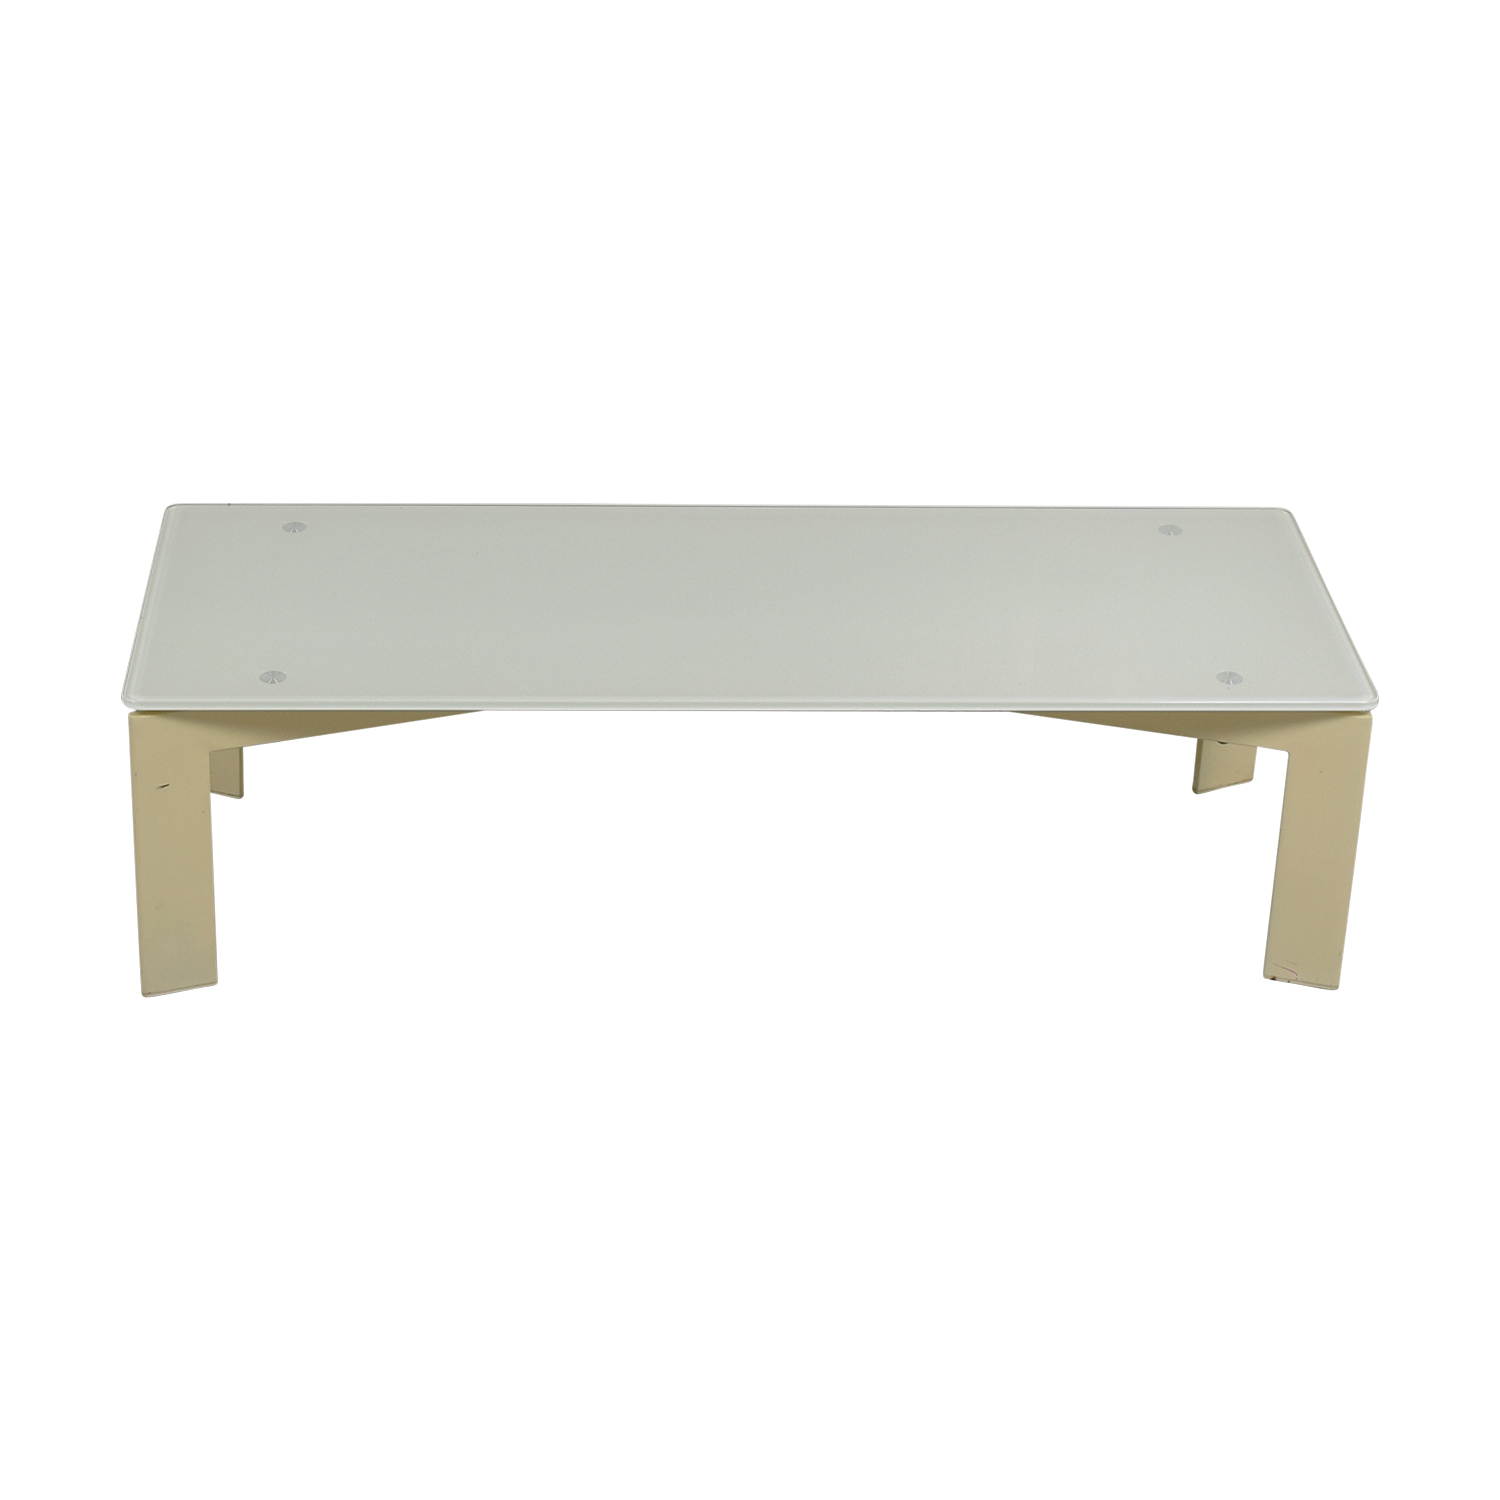 OFF White and Beige Coffee Table Tables